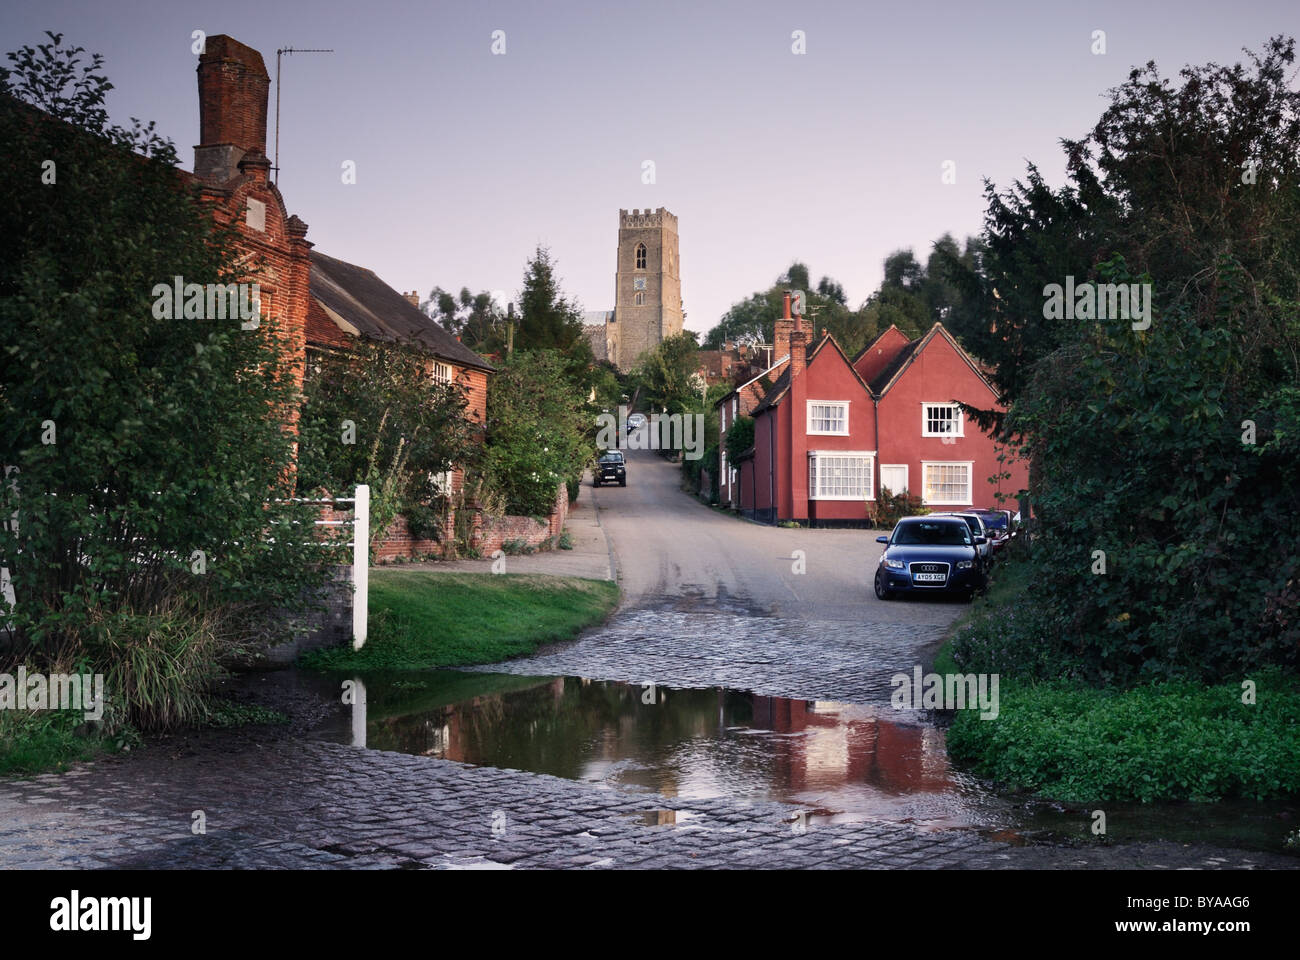 Kersey Village, Ford Across A Stream In The Foreground, St Mary Church In  The Distance , Suffolk, England, UK